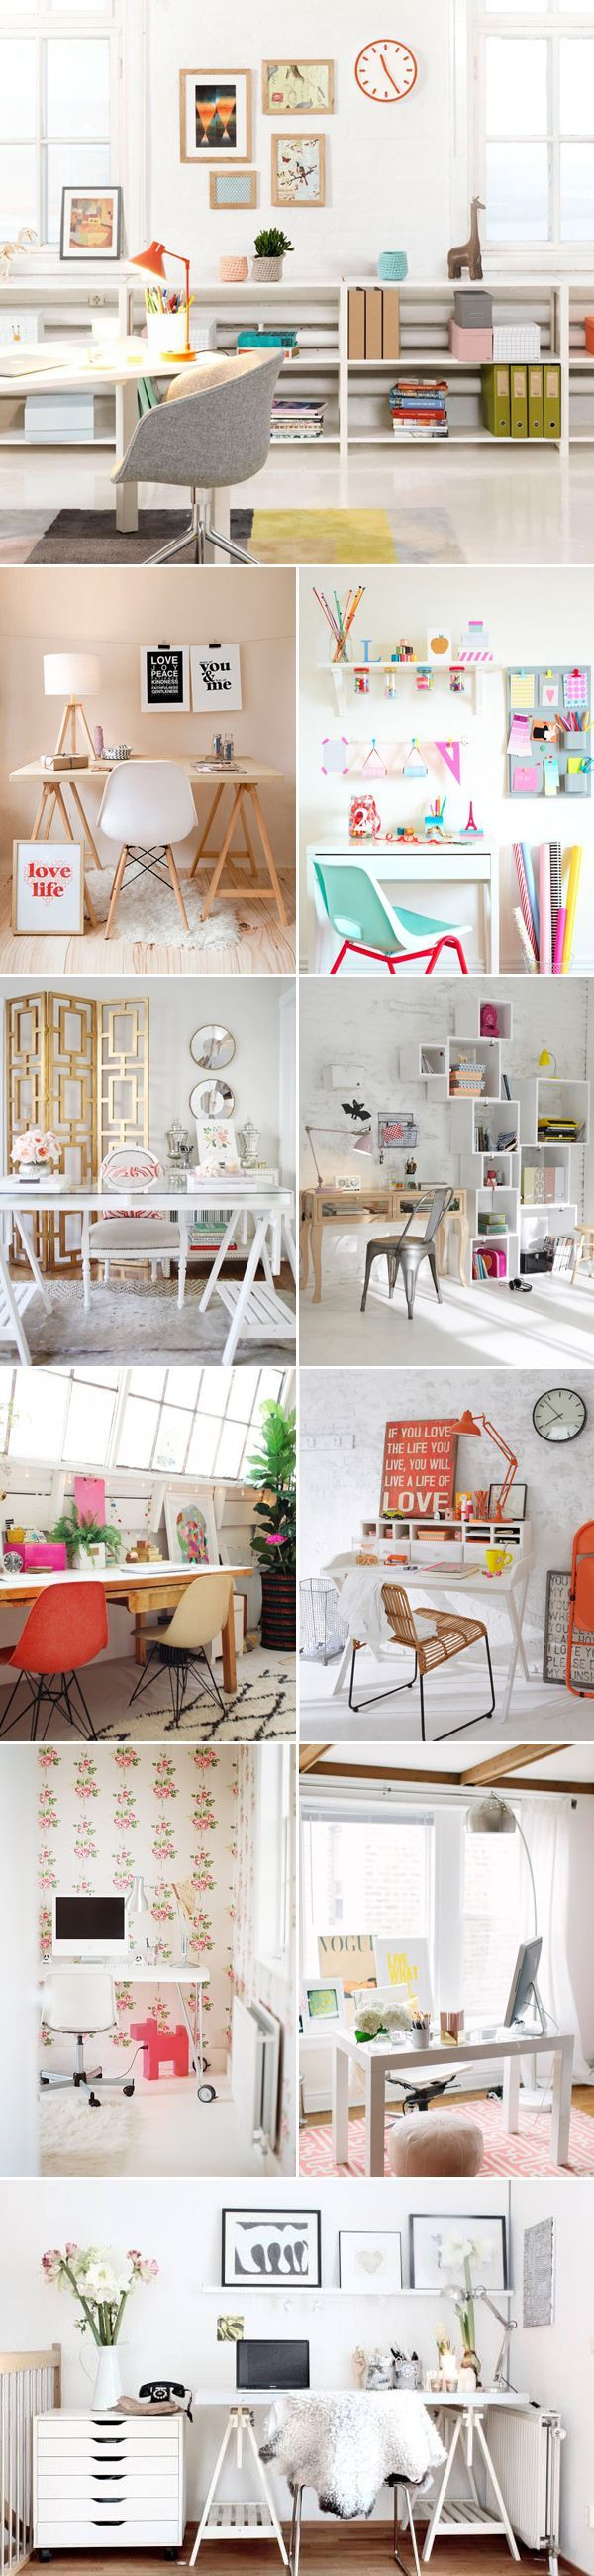 Como decorar o home office 10